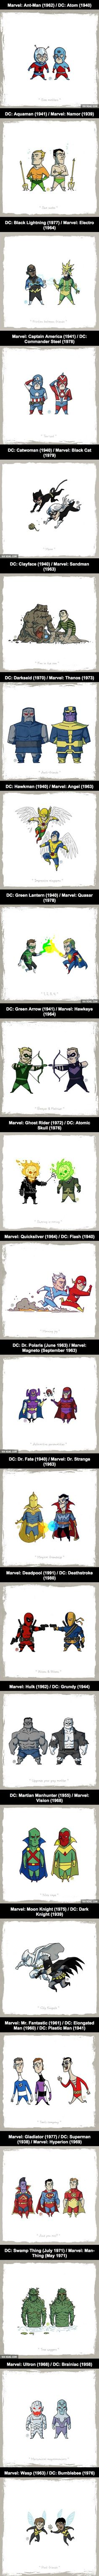 Marvel and DC comparisons